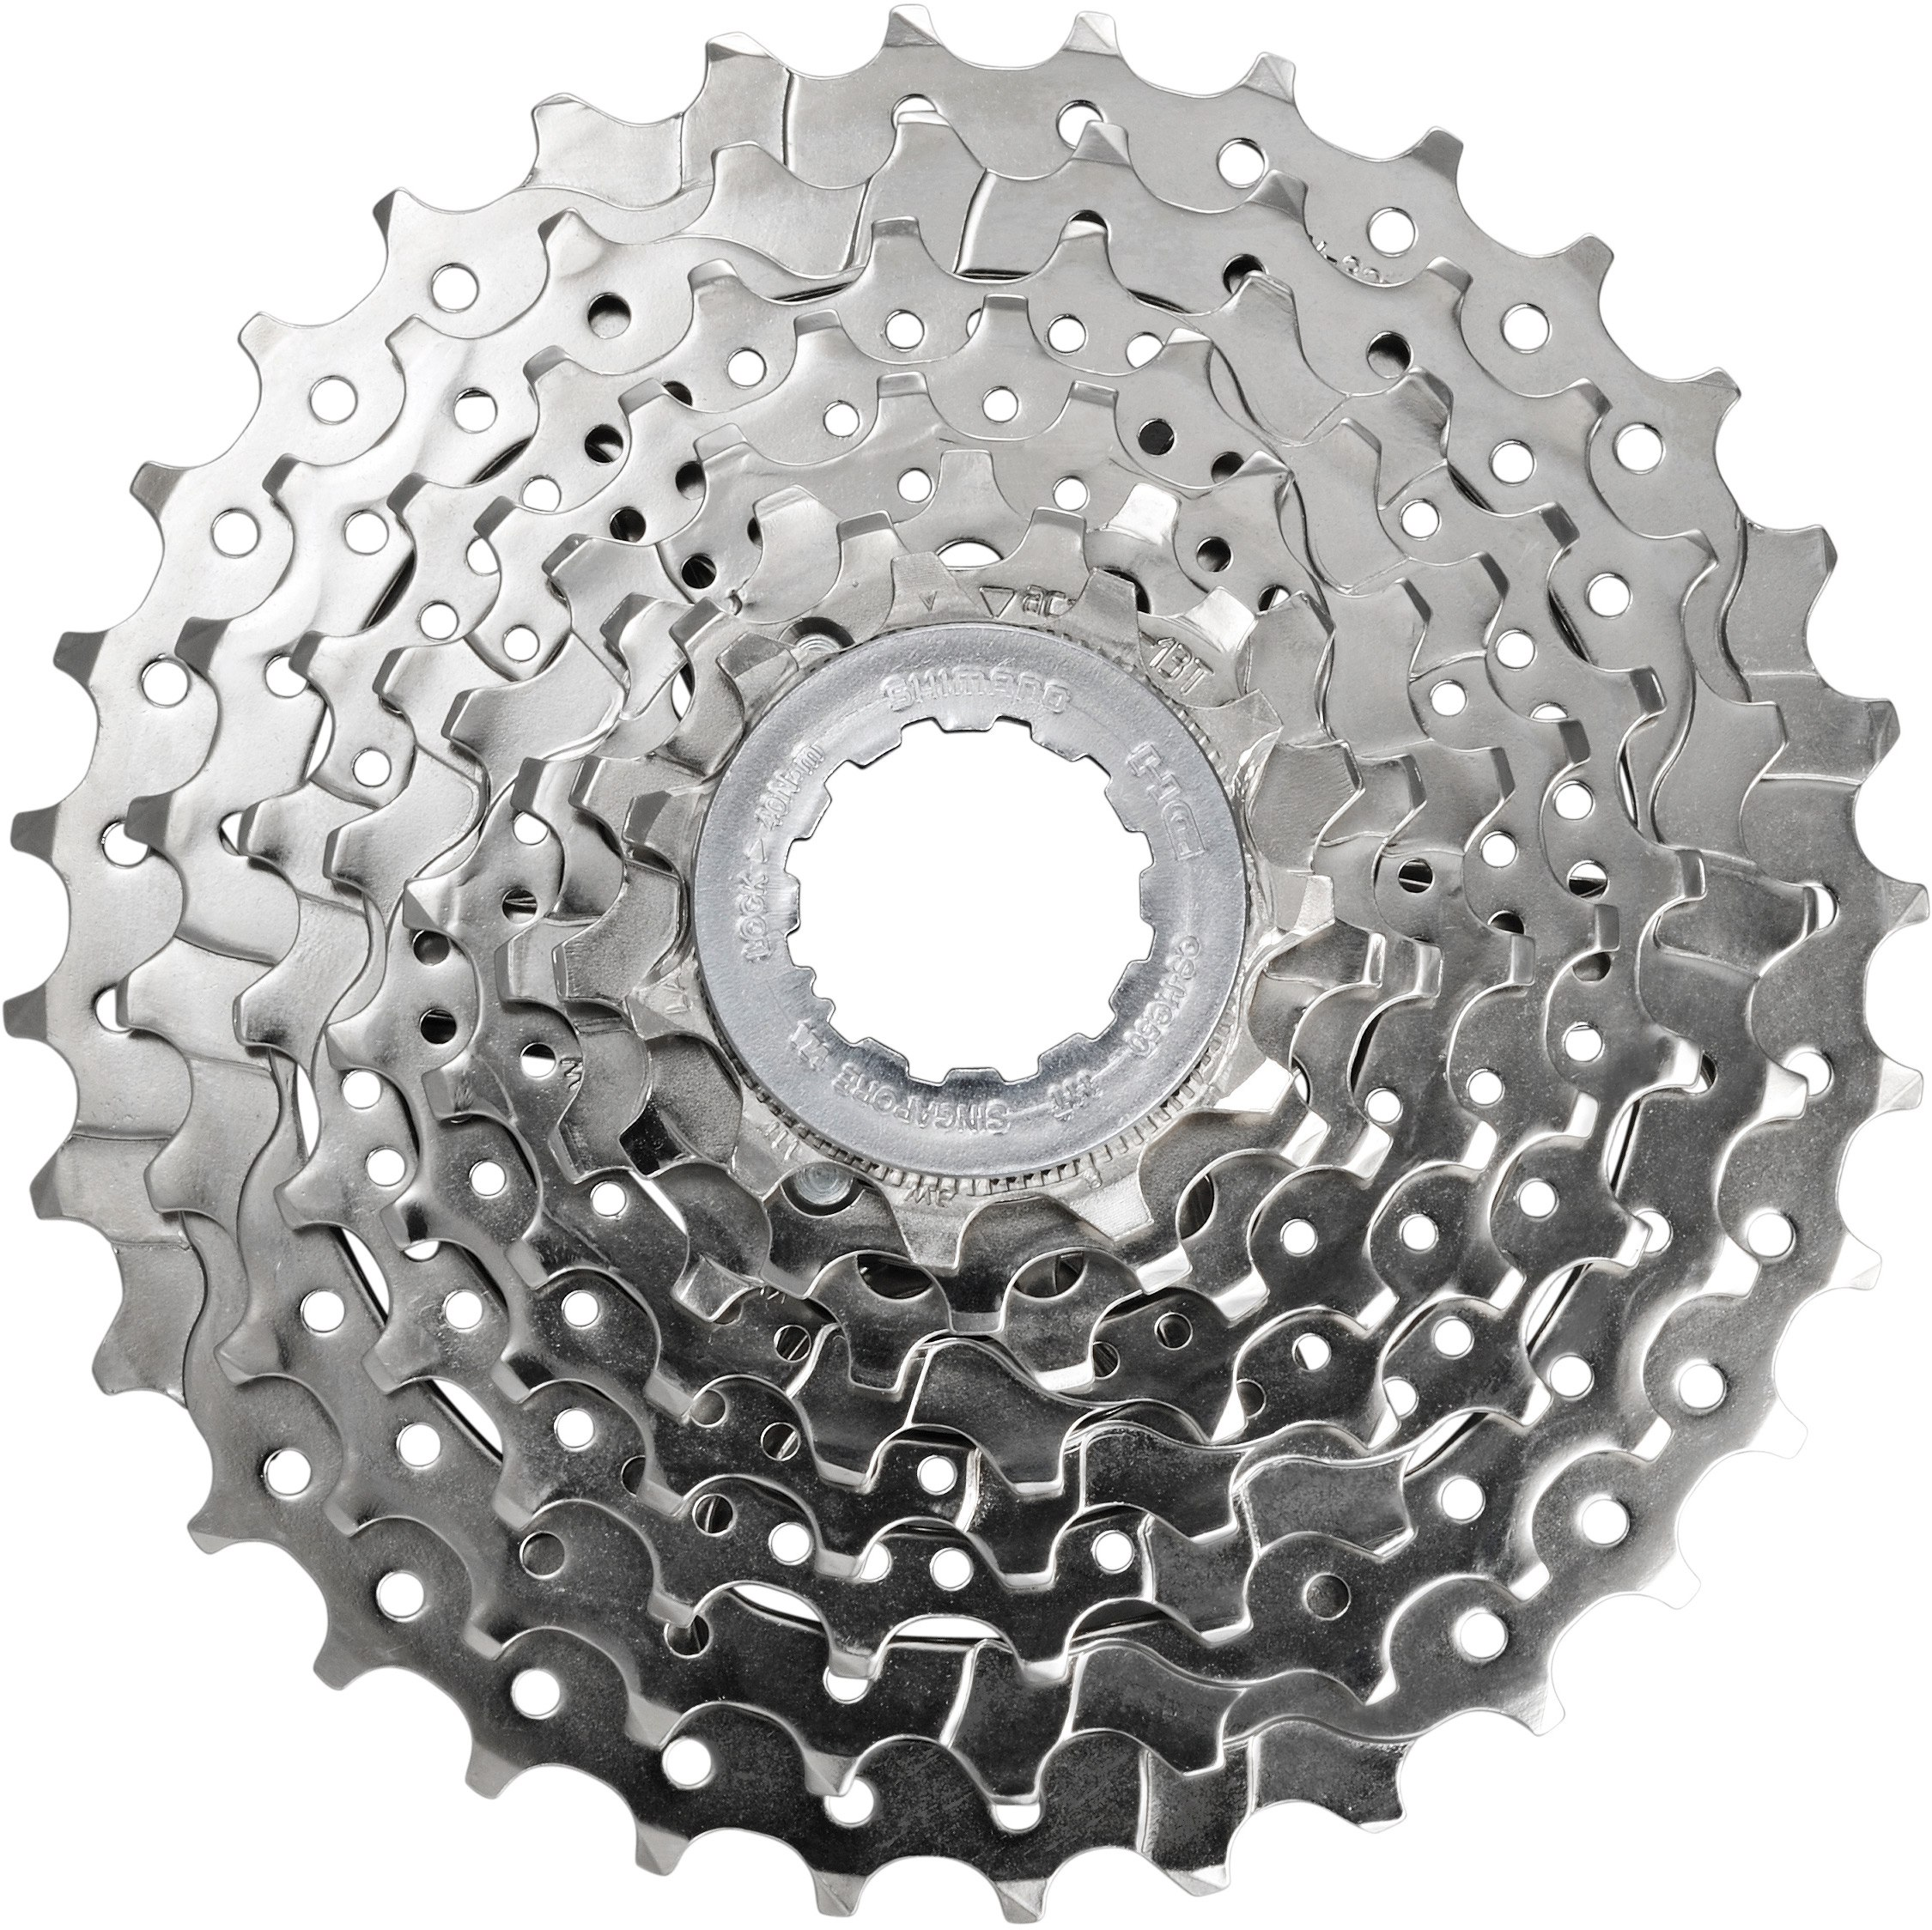 CS-HG50 8-speed cassette 12-25